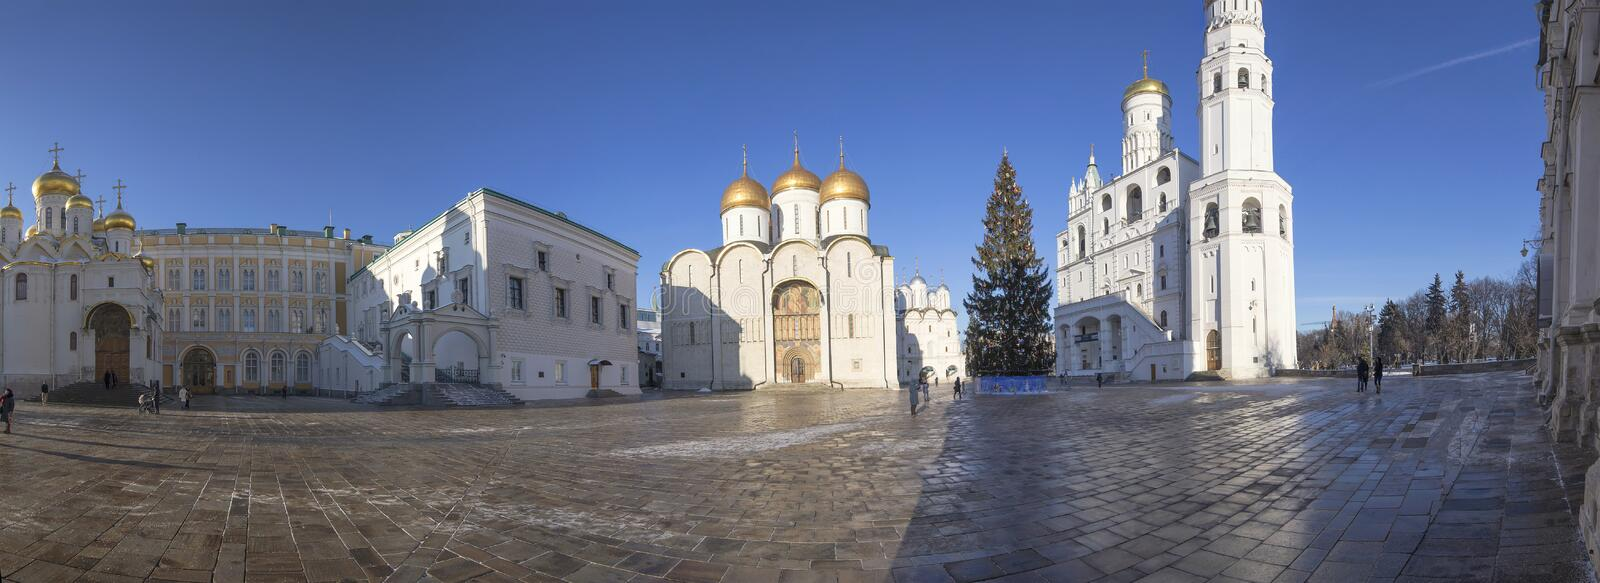 Panorama Cathedral Square with New Year Christmas tree, Inside of Moscow Kremlin, Russia. royalty free stock image